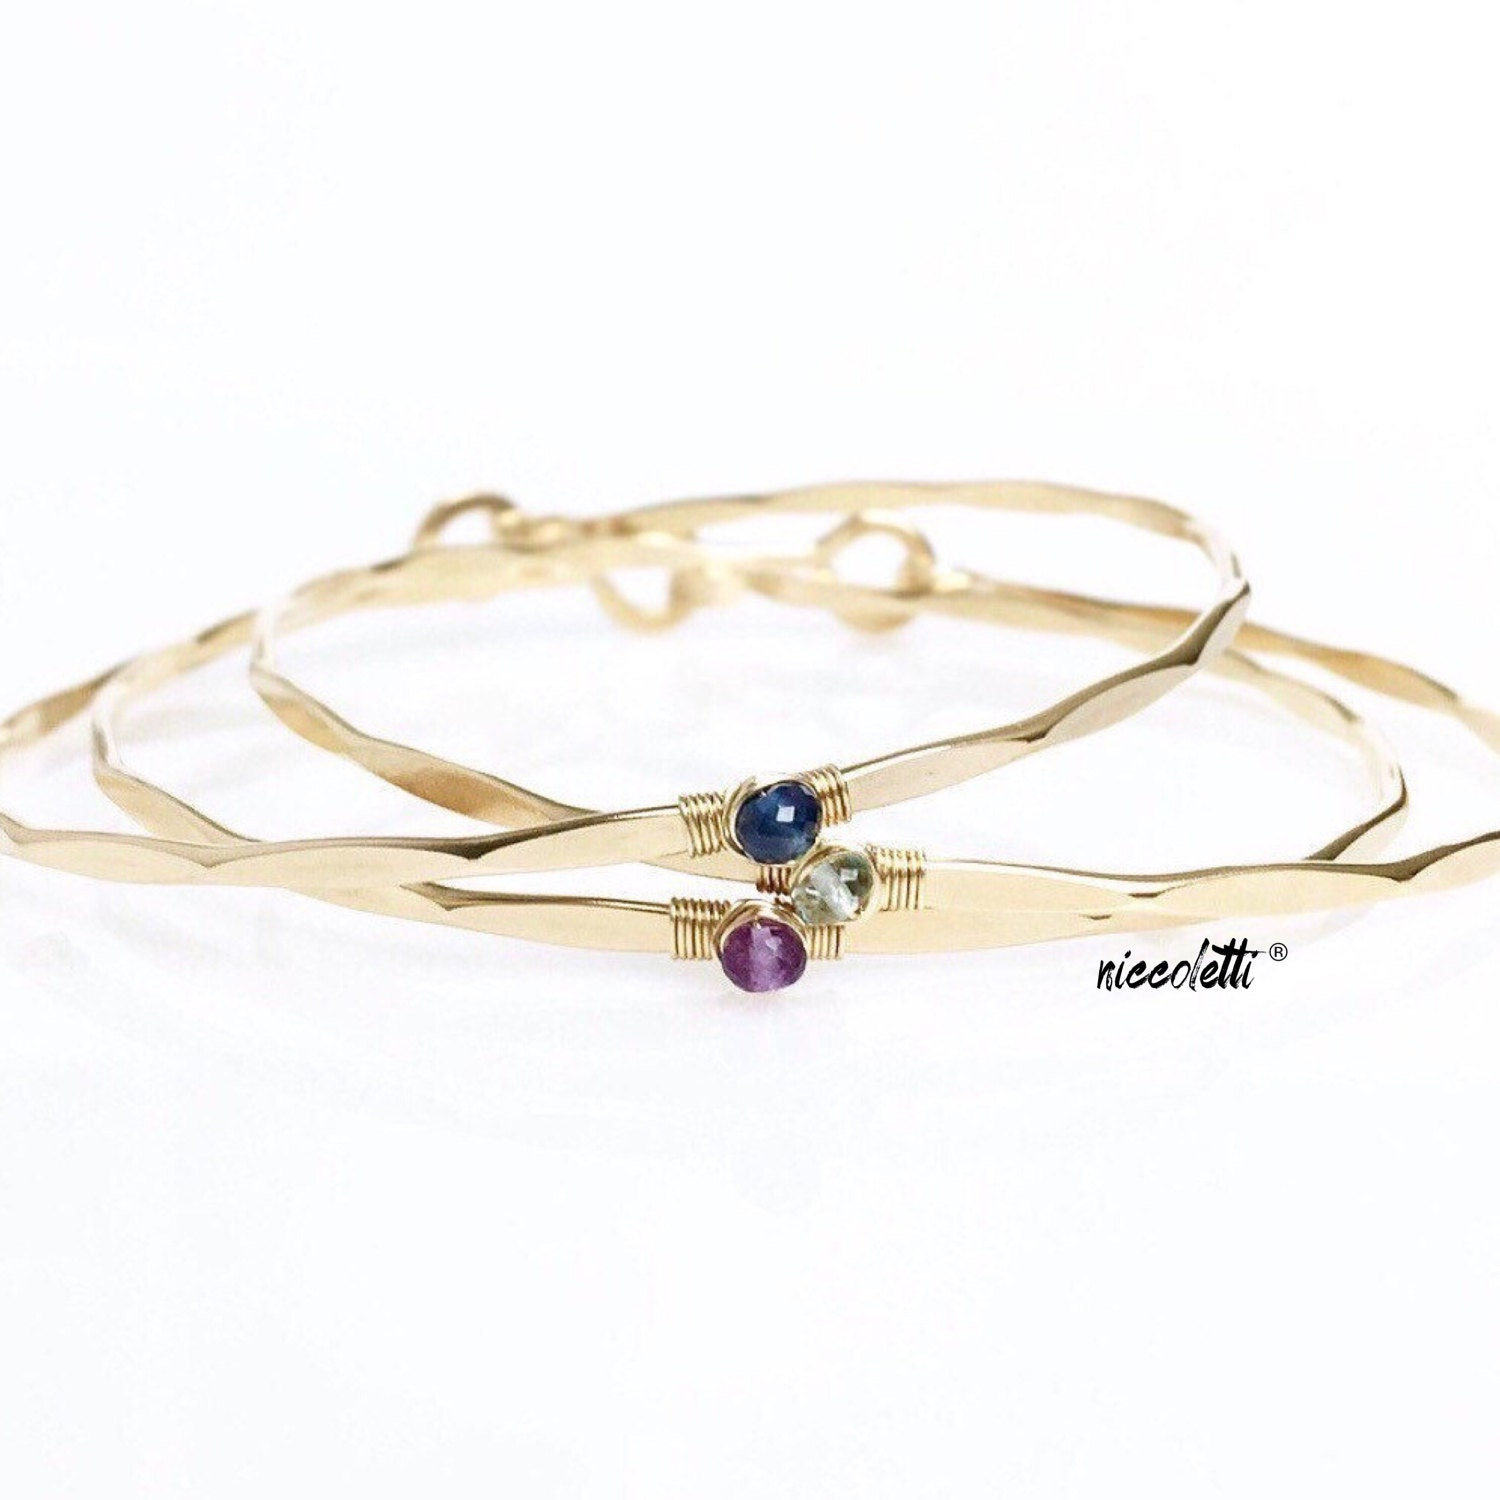 Gemstone Bracelet Trio / 14k Gold filled or Sterling Stacking Bangles / Birthstone Bracelets / Mothers Jewelry / Gemstone Skinny Bangles